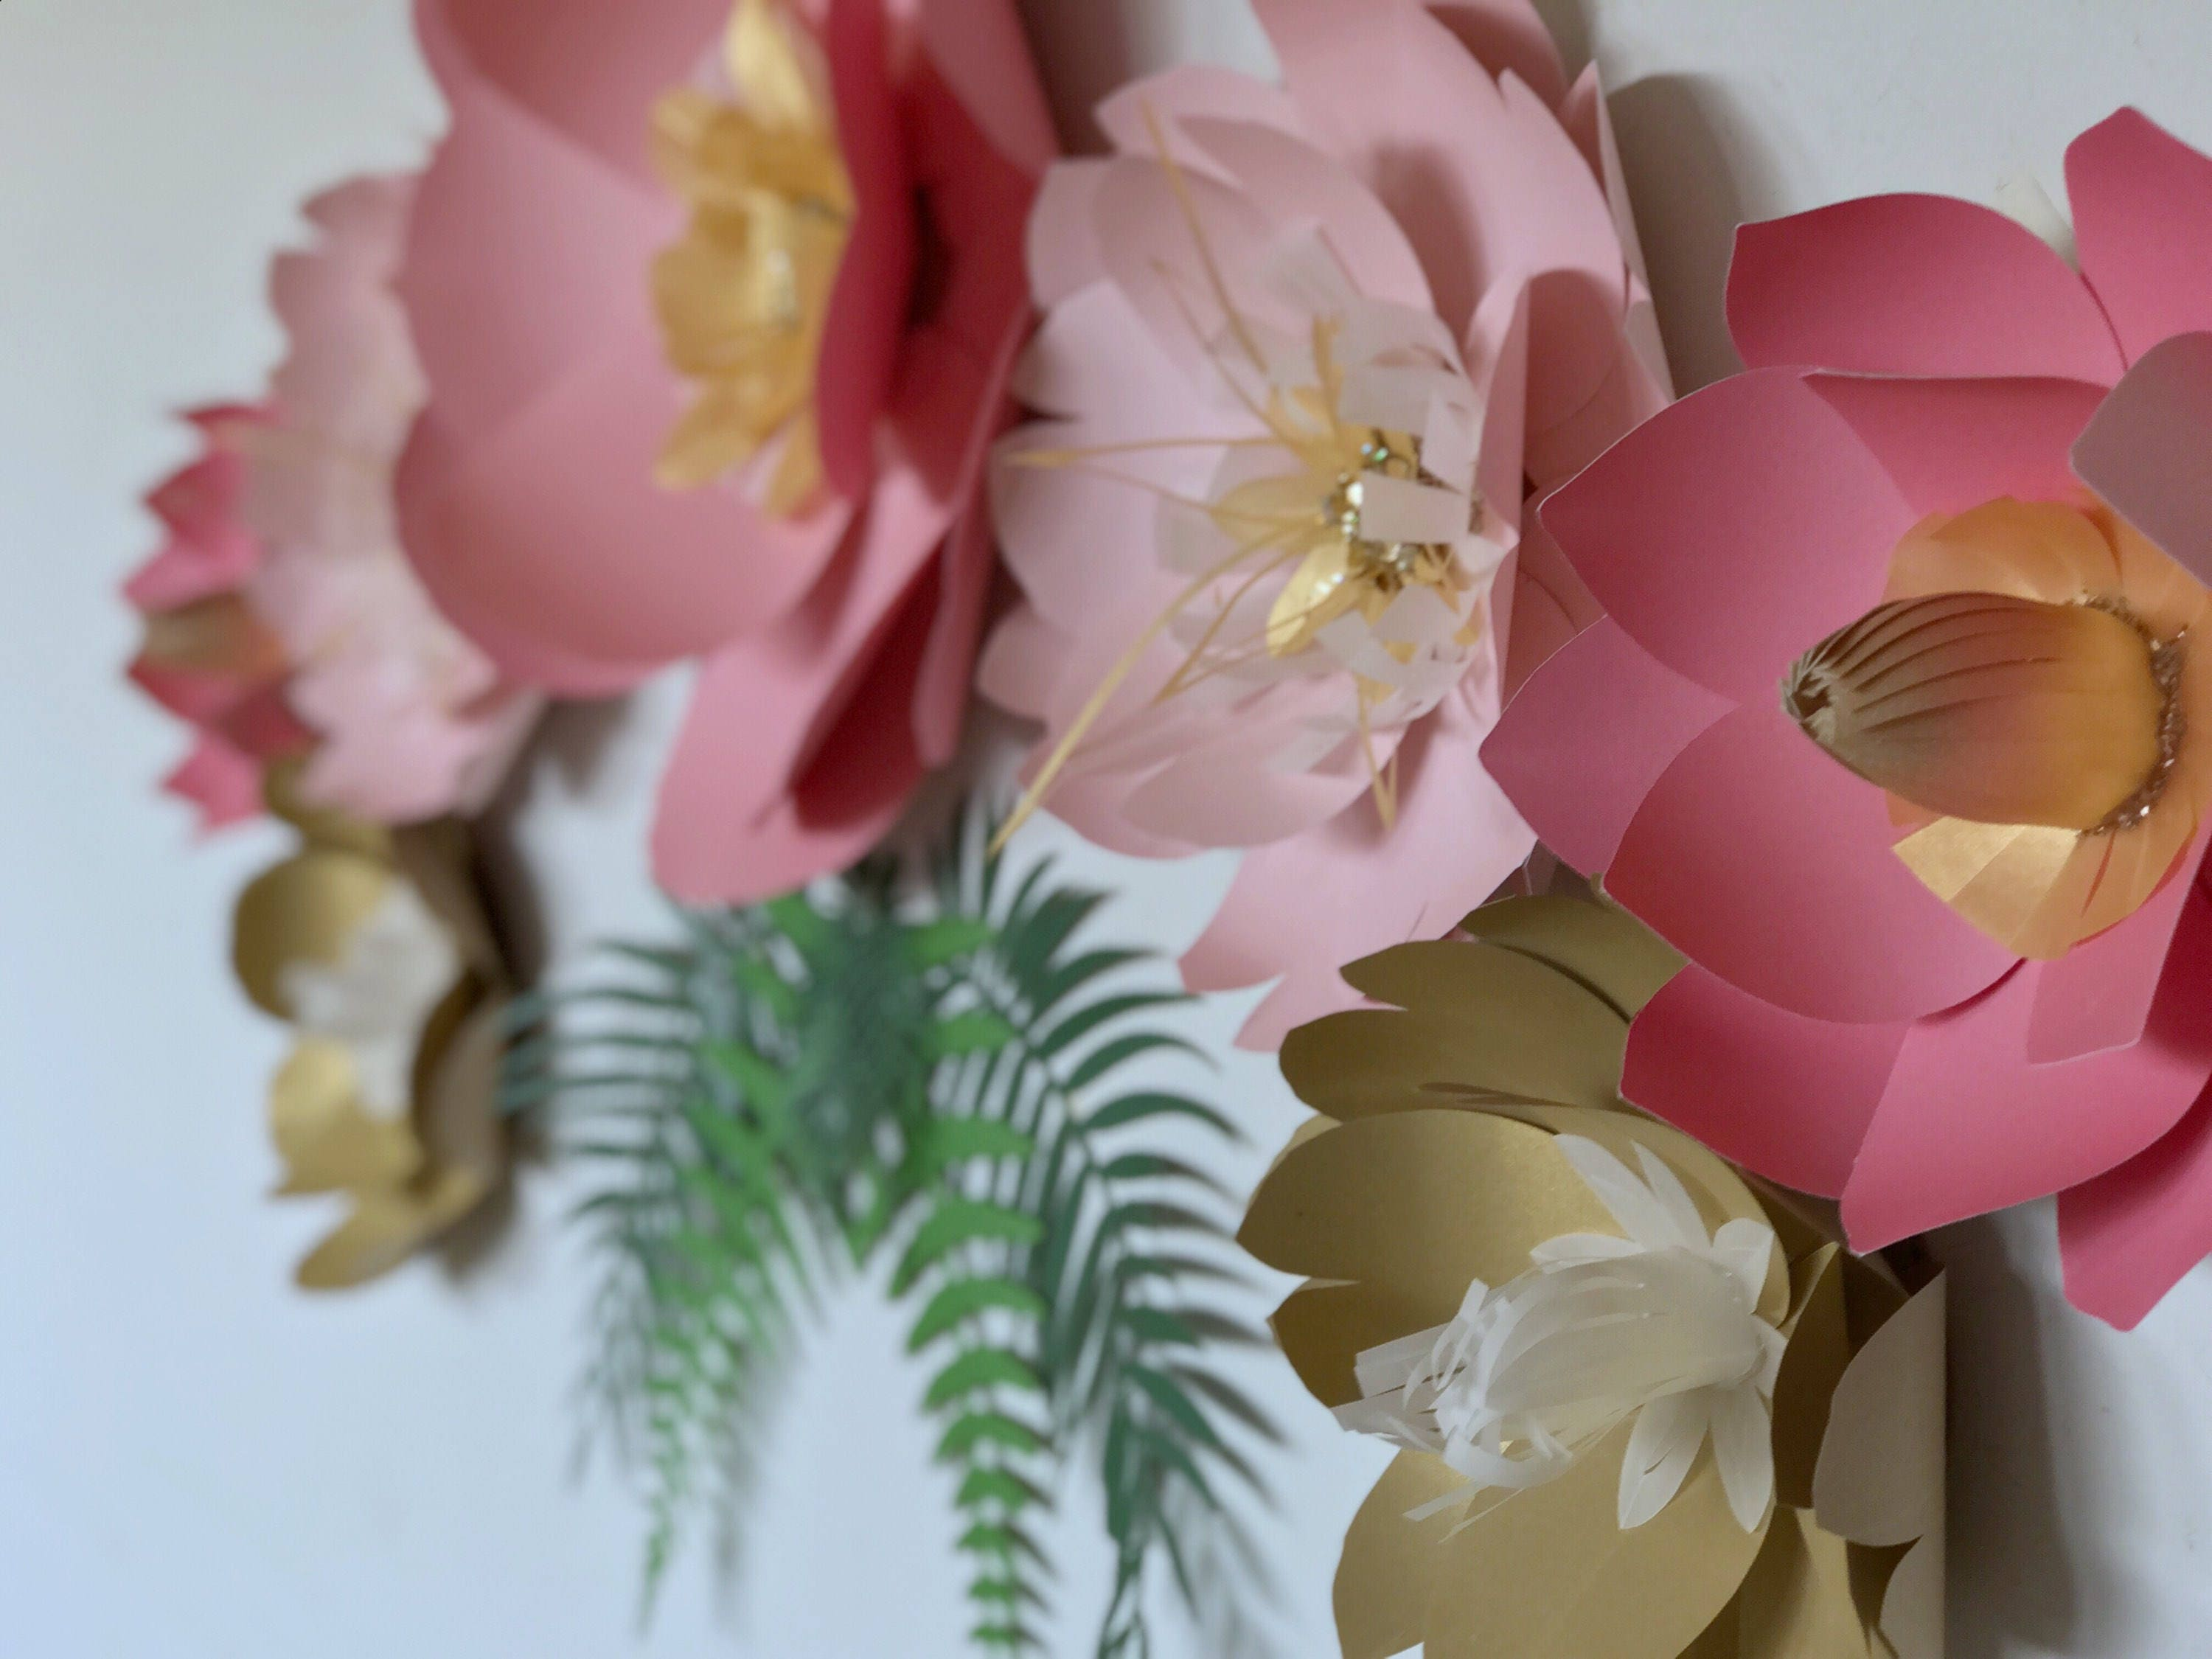 Coral pink nursery flower wall paper flower bedroom accent 3D wall art giant paper flower backdrop gold flower decor birthday party & Coral pink nursery flower wall paper flower bedroom accent 3D wall ...